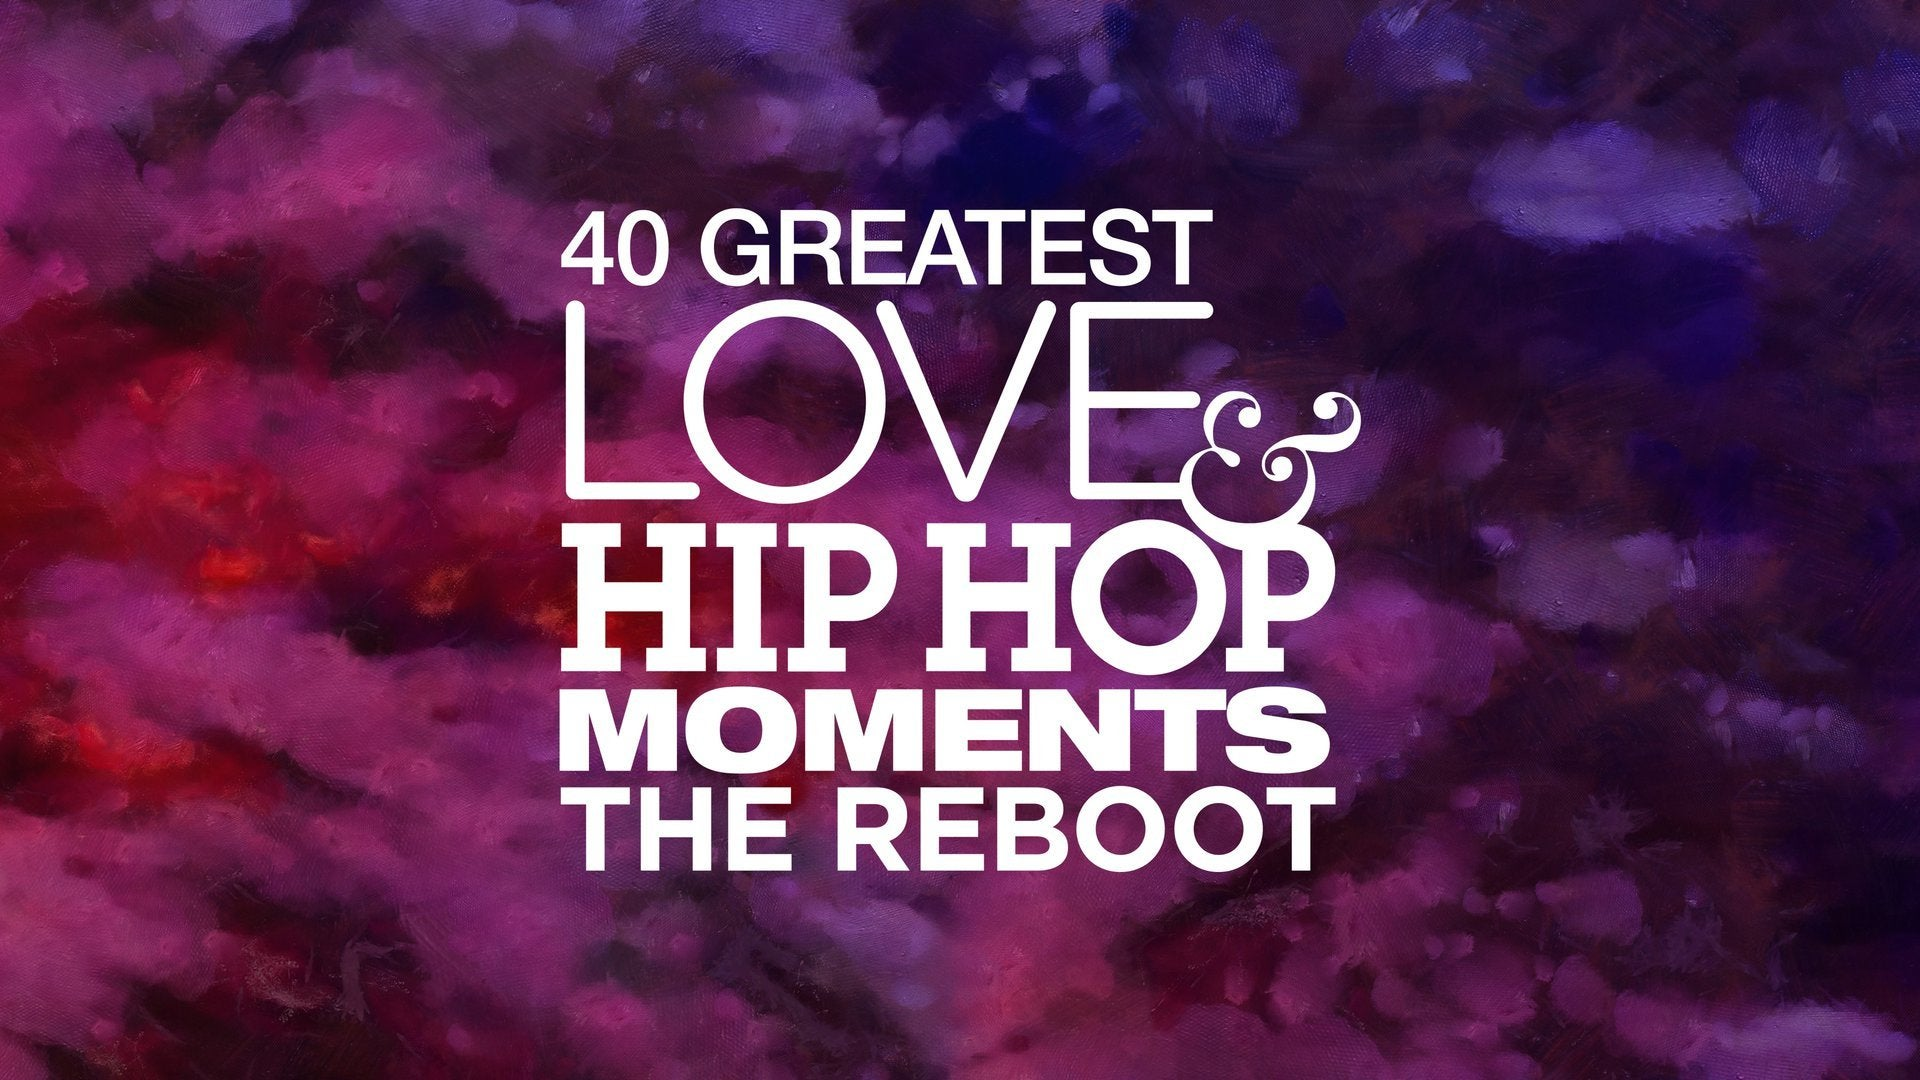 40 Greatest Love & Hip Hop Moments: The Reboot